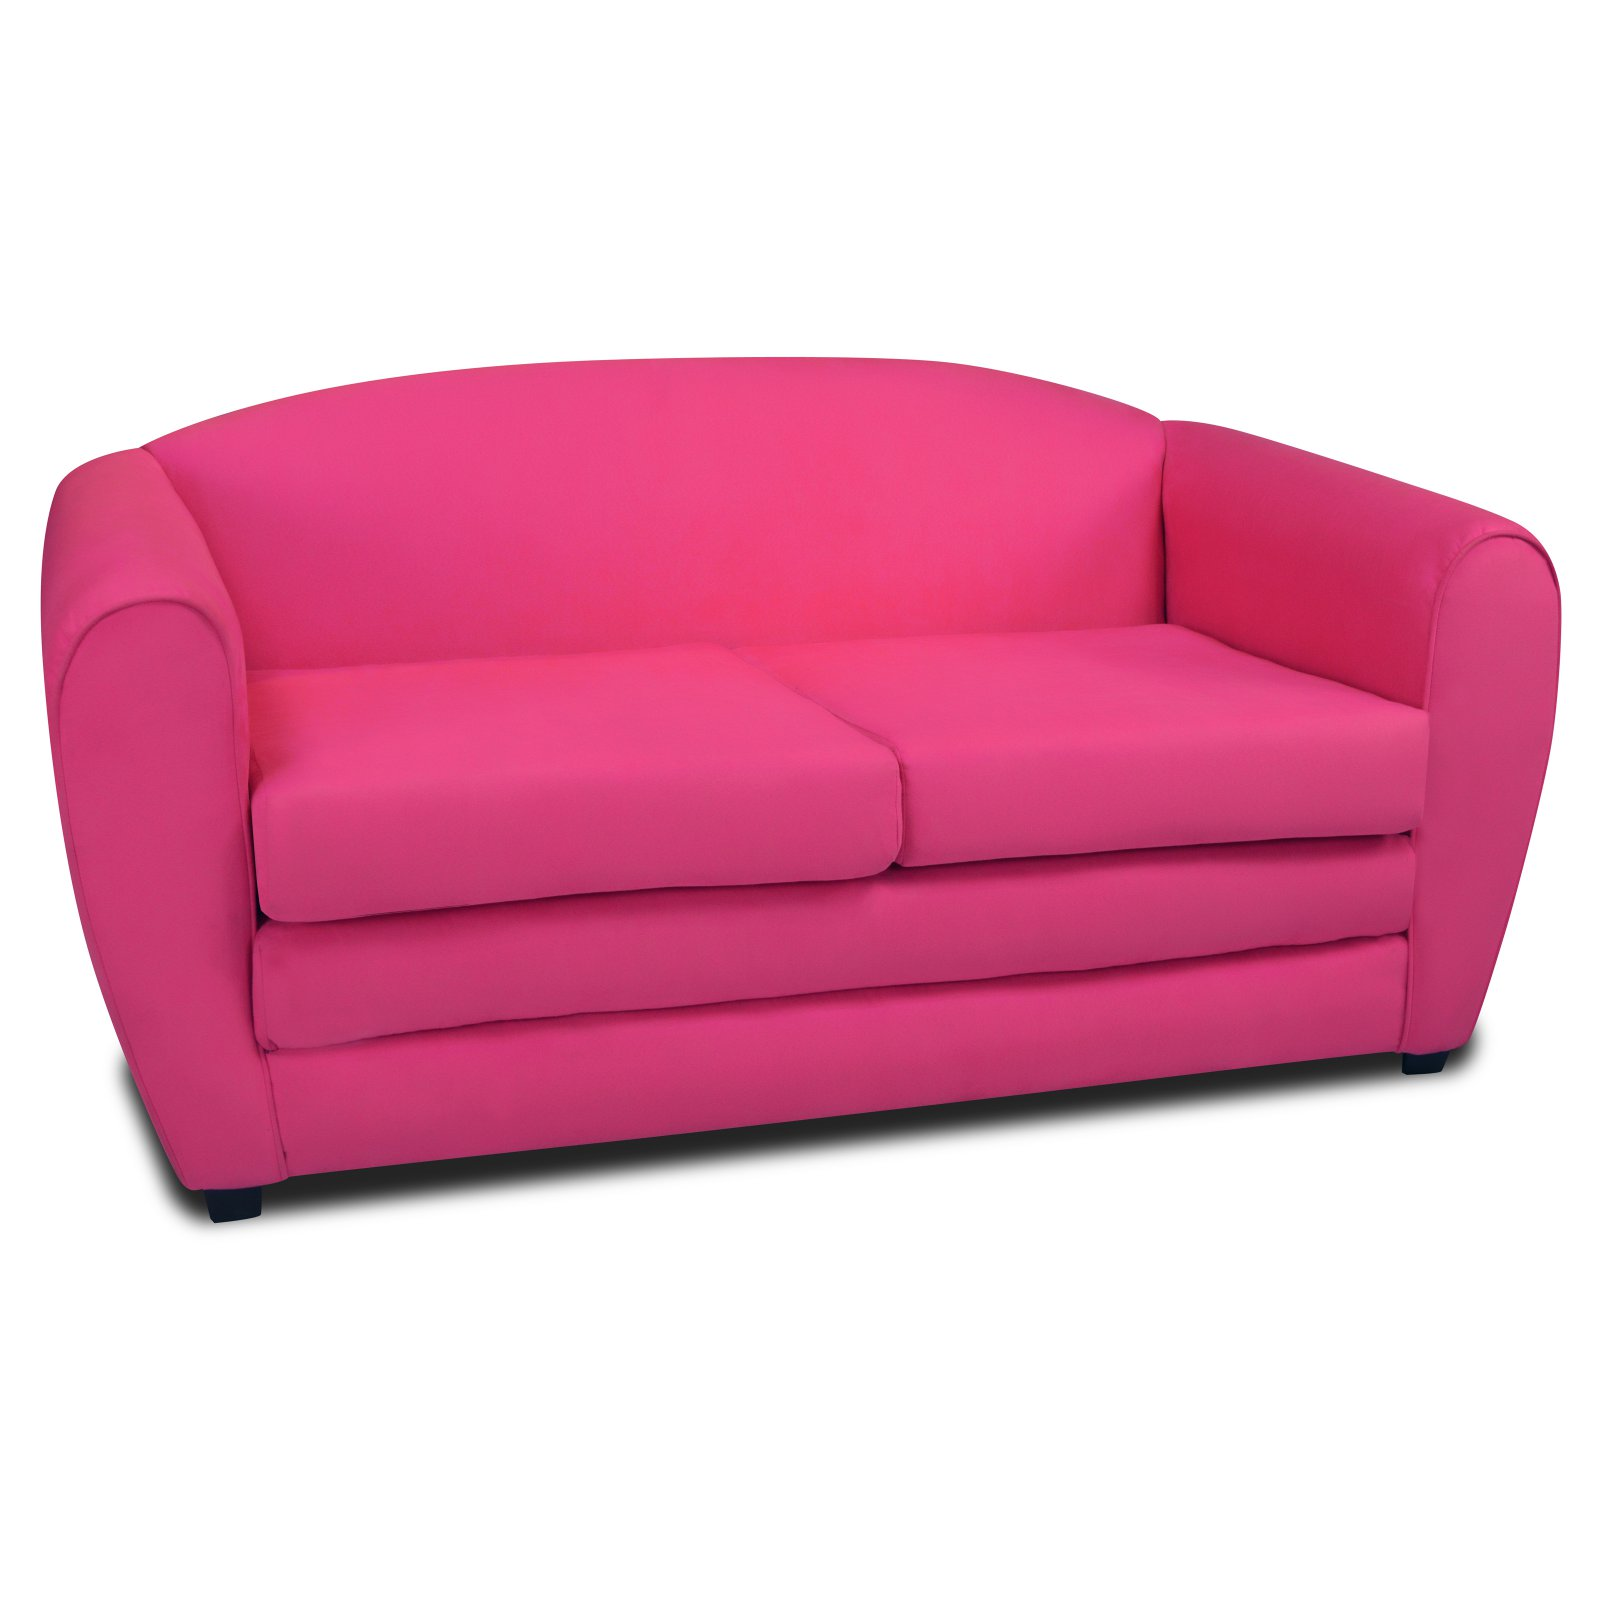 Etonnant Tween Sleeper Sofa   Passion Pink